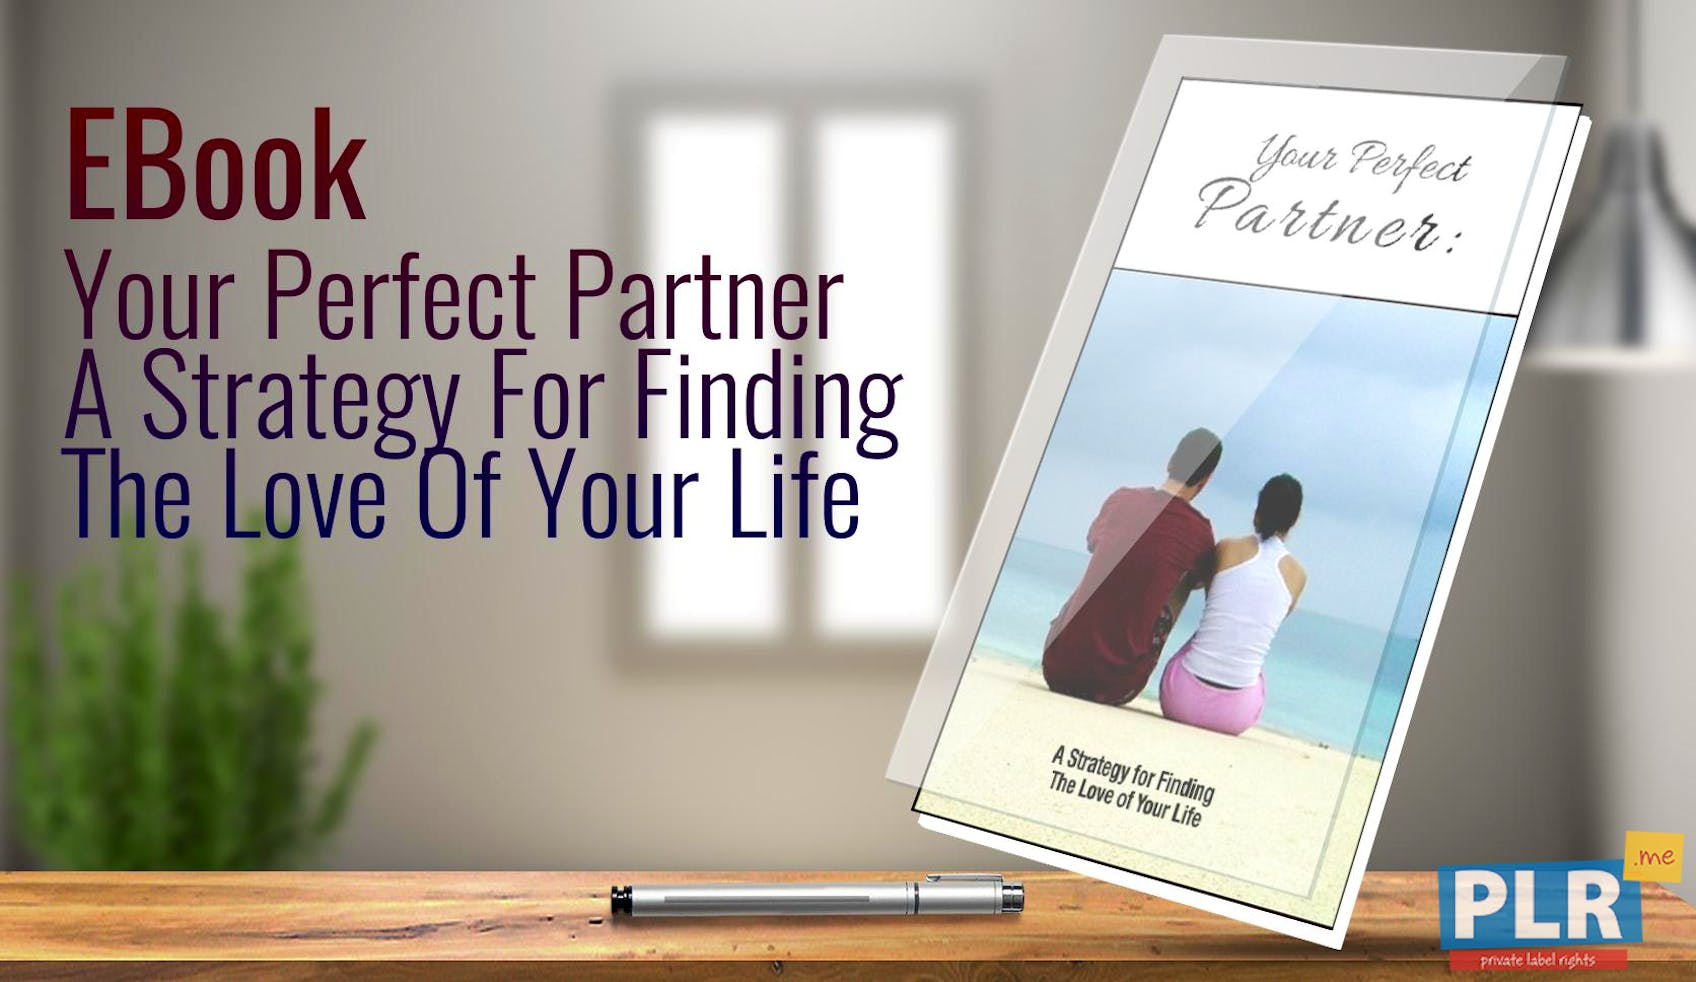 Your Perfect Partner A Strategy For Finding The Love Of Your Life